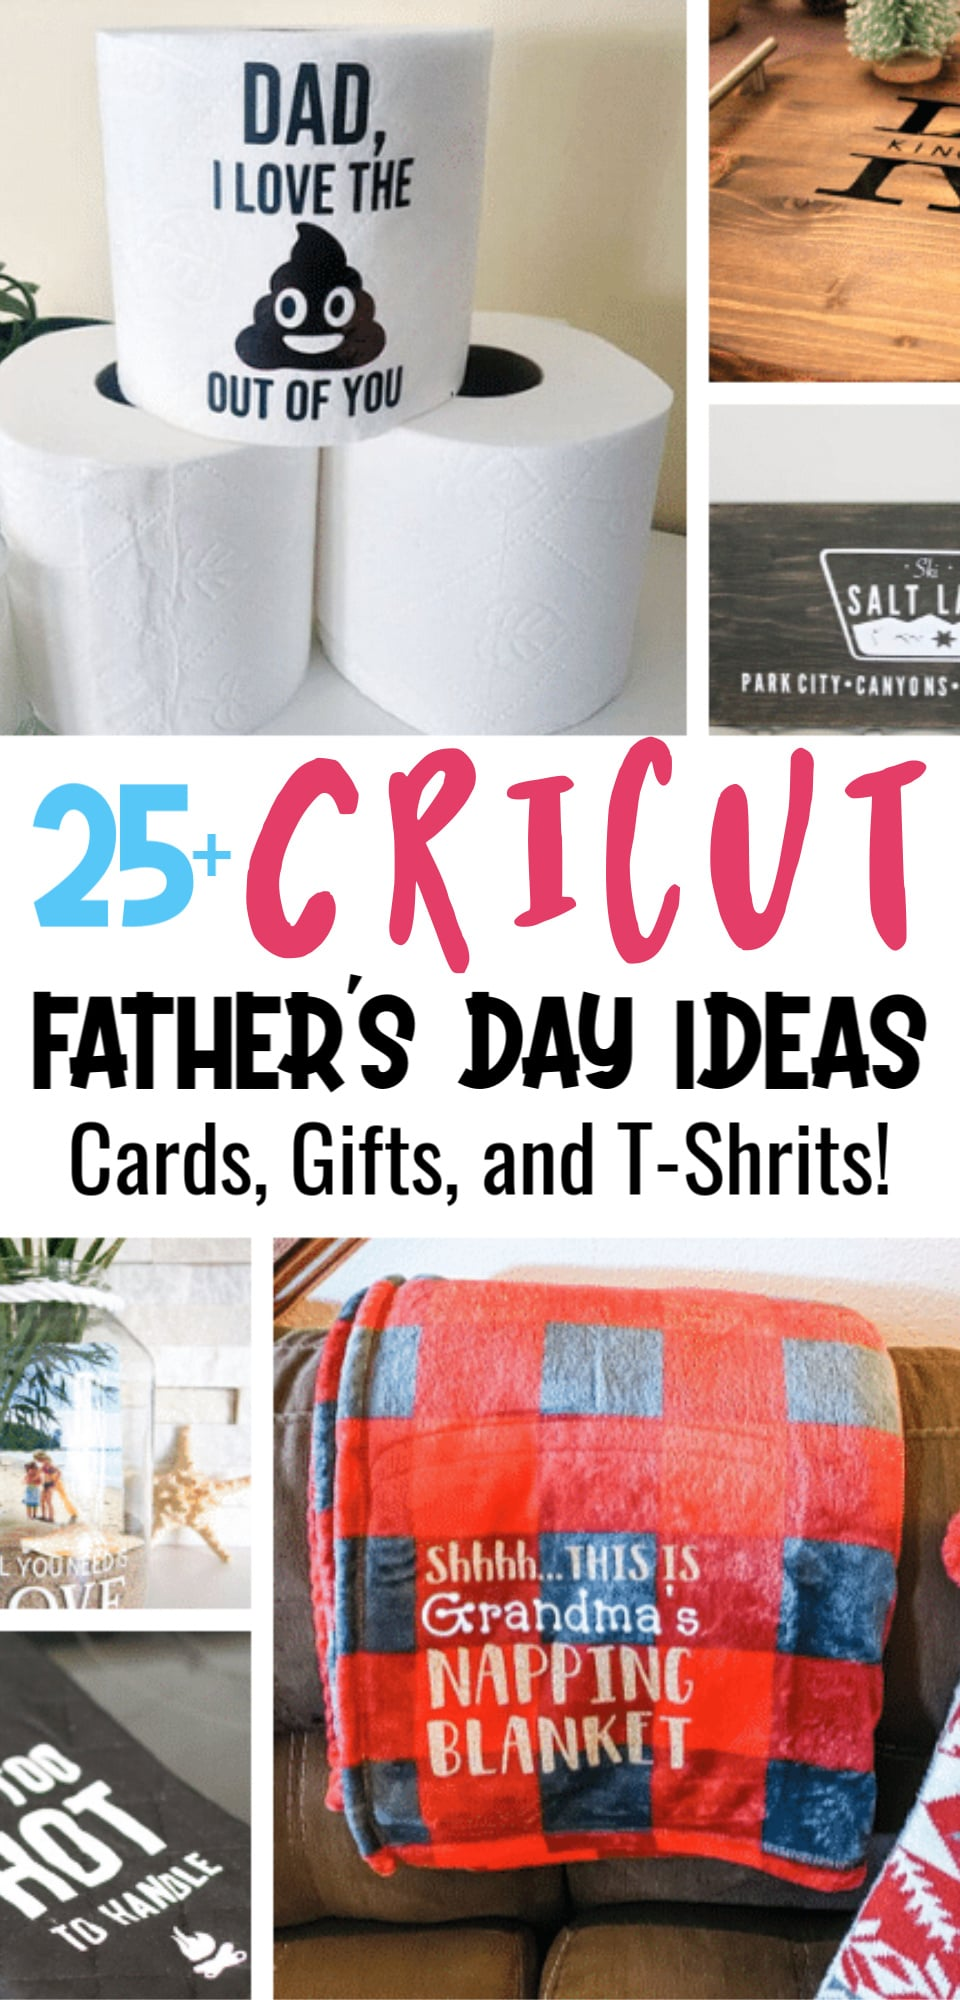 25+ Cricut Father's Day Ideas - homemade gifts, card ideas, Father's Day T-Shirts,and more! via @clarkscondensed